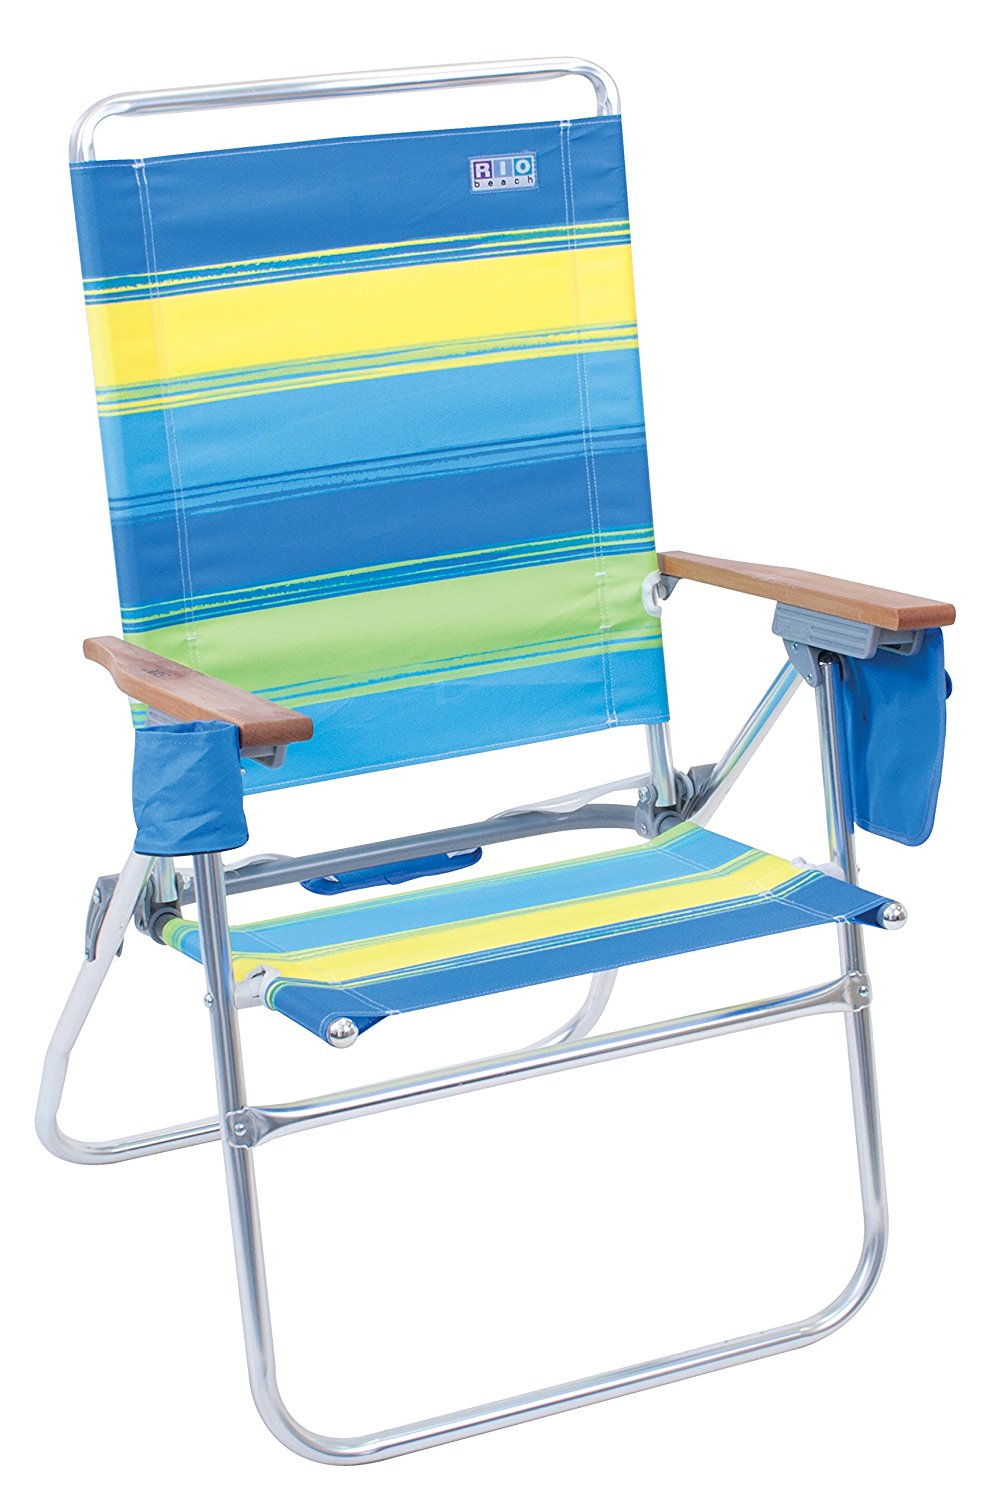 rio high boy beach chair kitchen tall chairs buy hi in cheap price on alibaba com